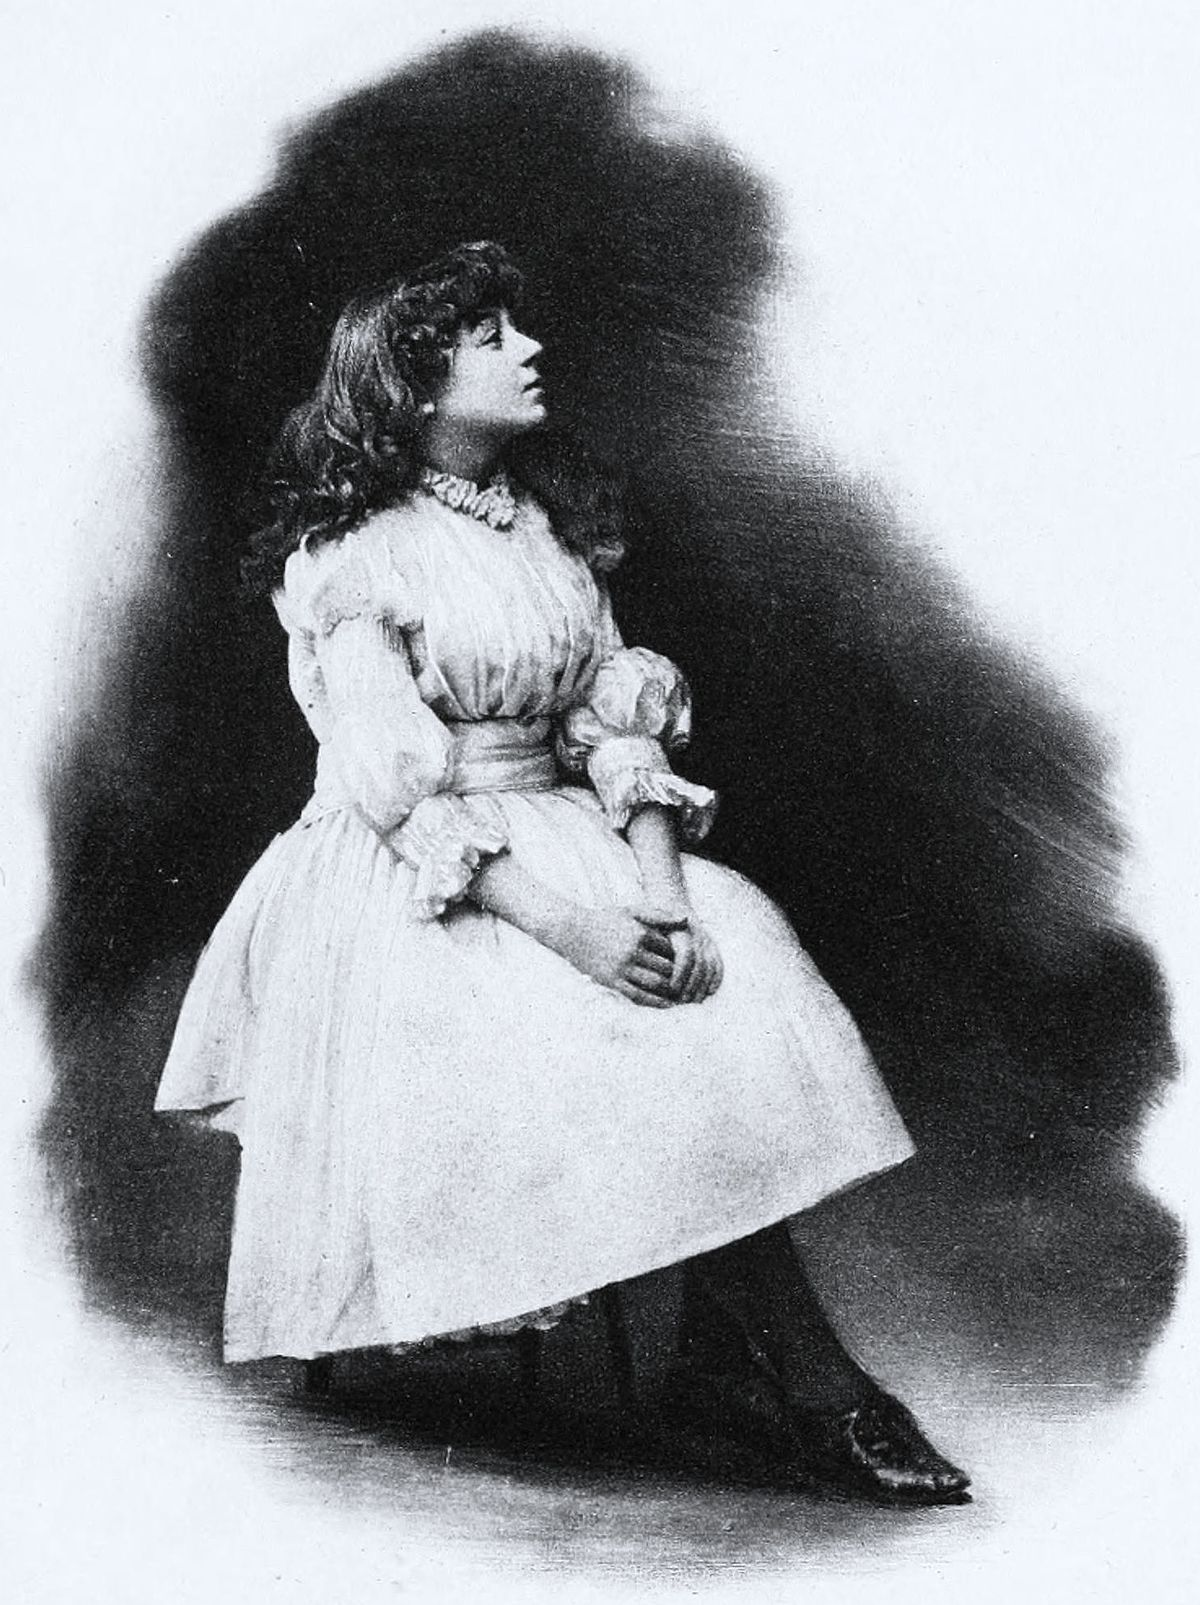 an introduction to the life of charles lutwidge dodgson or lewis carroll Lewis carroll (charles lutwidge dodgson) (1832-1898), photographer and author of 'alice in wonderland' sitter in 9 portraits artist associated with 62 portraits.